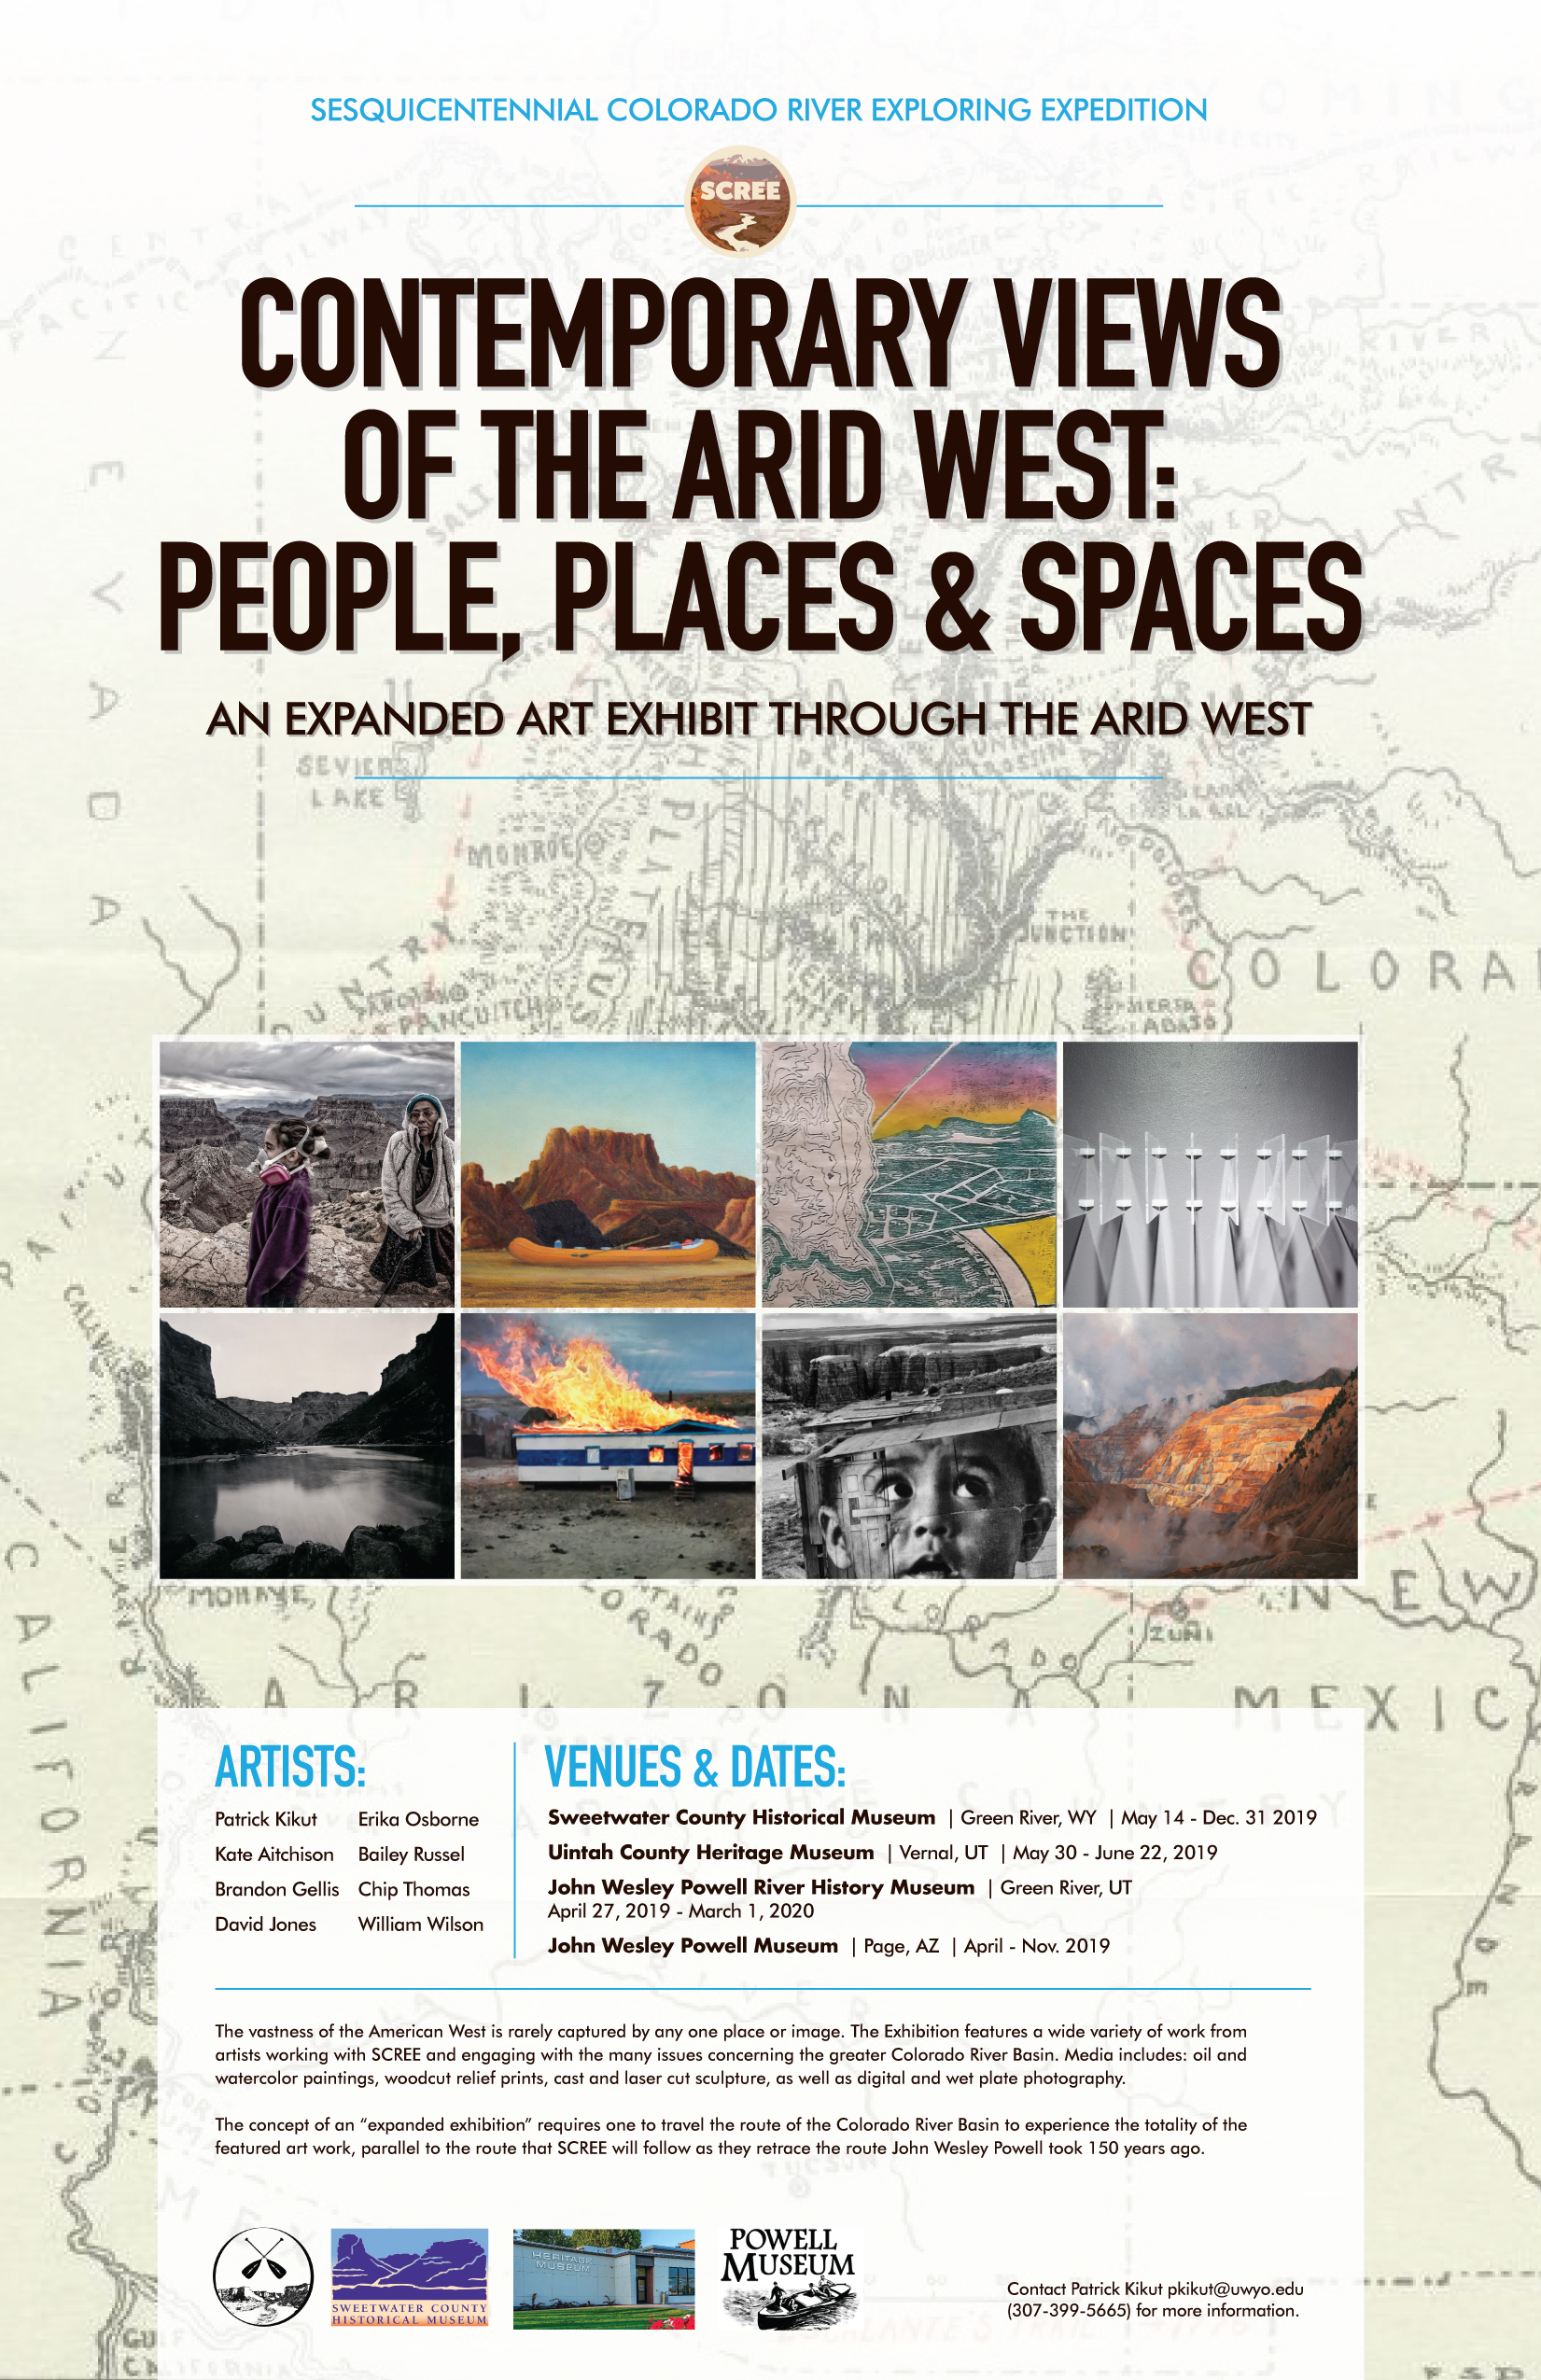 Art Exhibitions Part of Sesquicentennial Colorado River Exploration Expedition Project     authored by UW Institutional Communications, April 16, 2019.